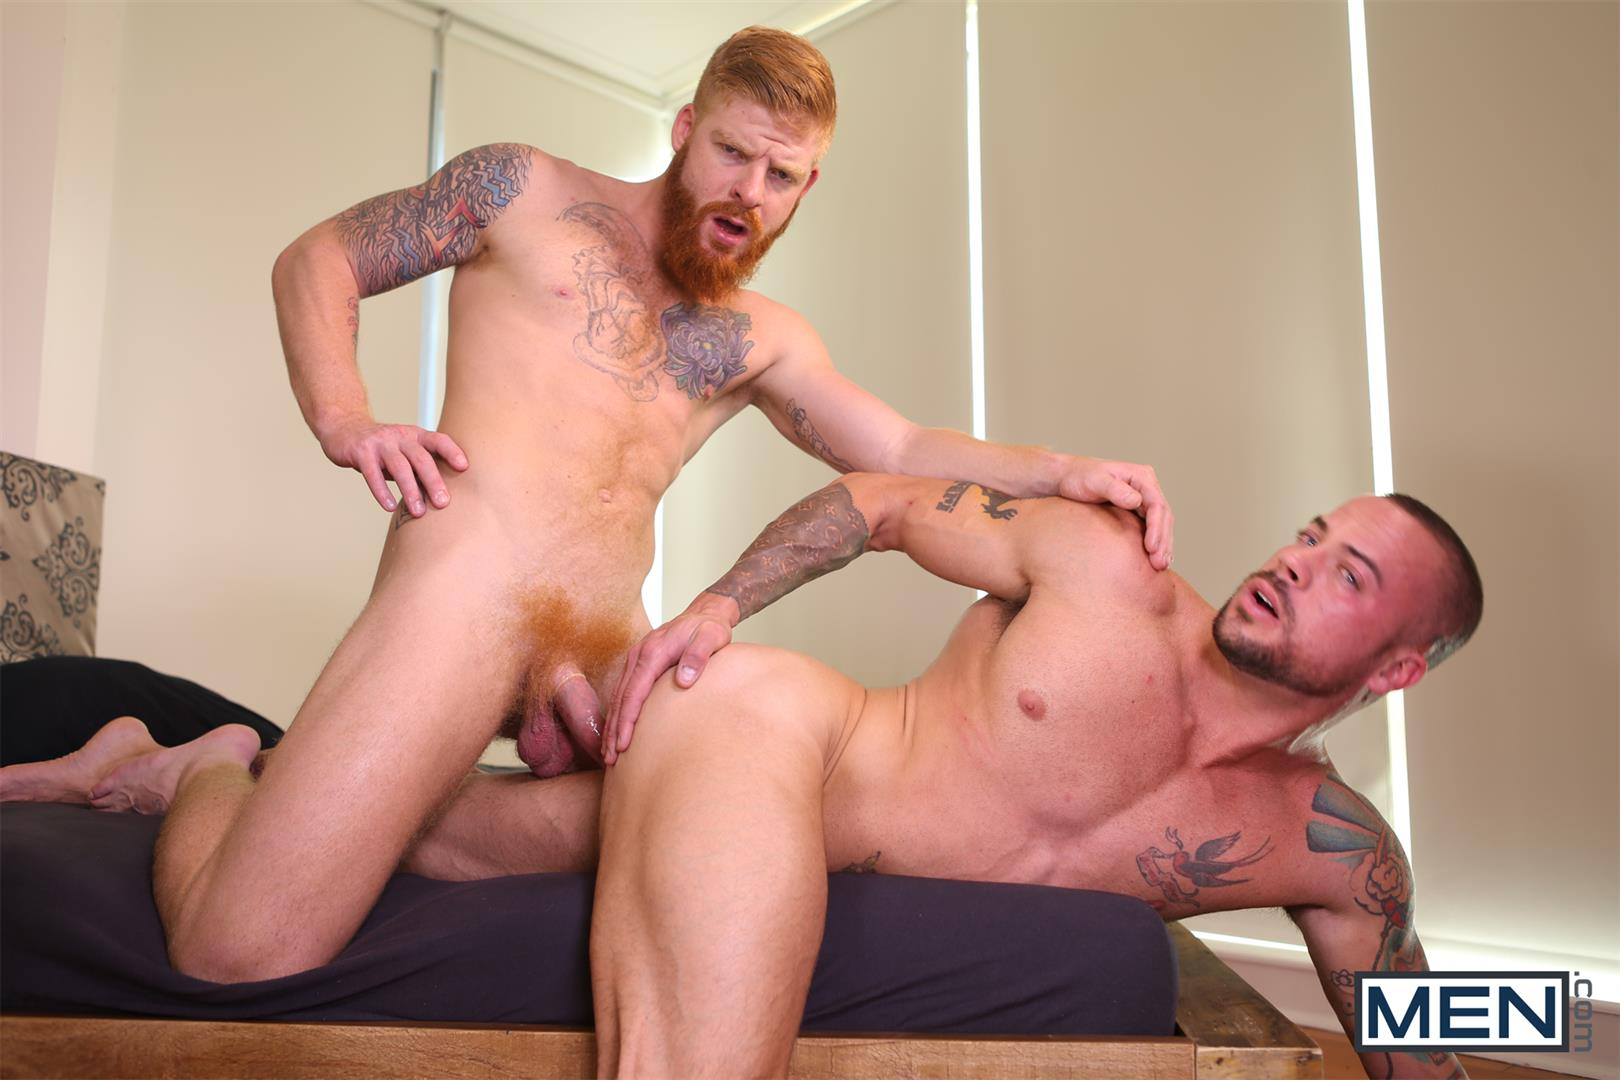 Men-Bennett-Anthony-and-Sean-Duran-Naked-Redhead-Muscle-Guys-Fucking-Amateur-Gay-Porn-11 Bennett Anthony Fucking A Muscle Hunk With His Big Ginger Cock